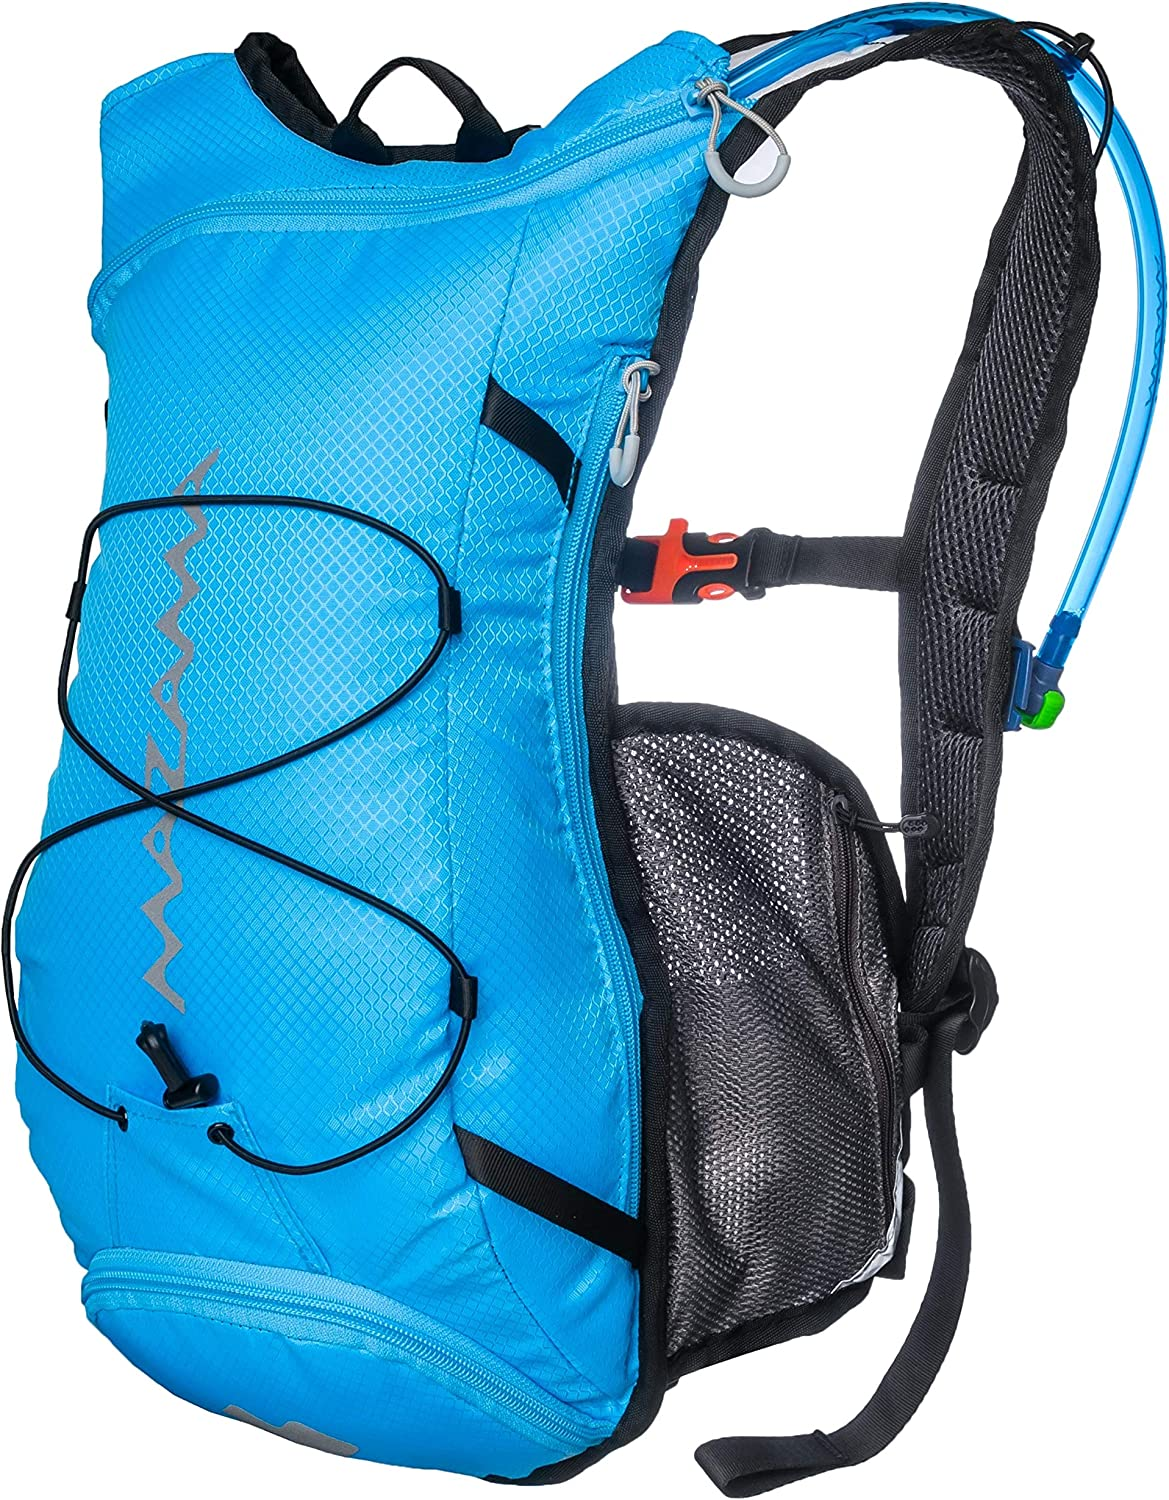 Mazama Tumalo Hydration Pack with 2 or 3 Liter Reservoir, Water Bladder Features USA Made, Taste Free BPA Free Film